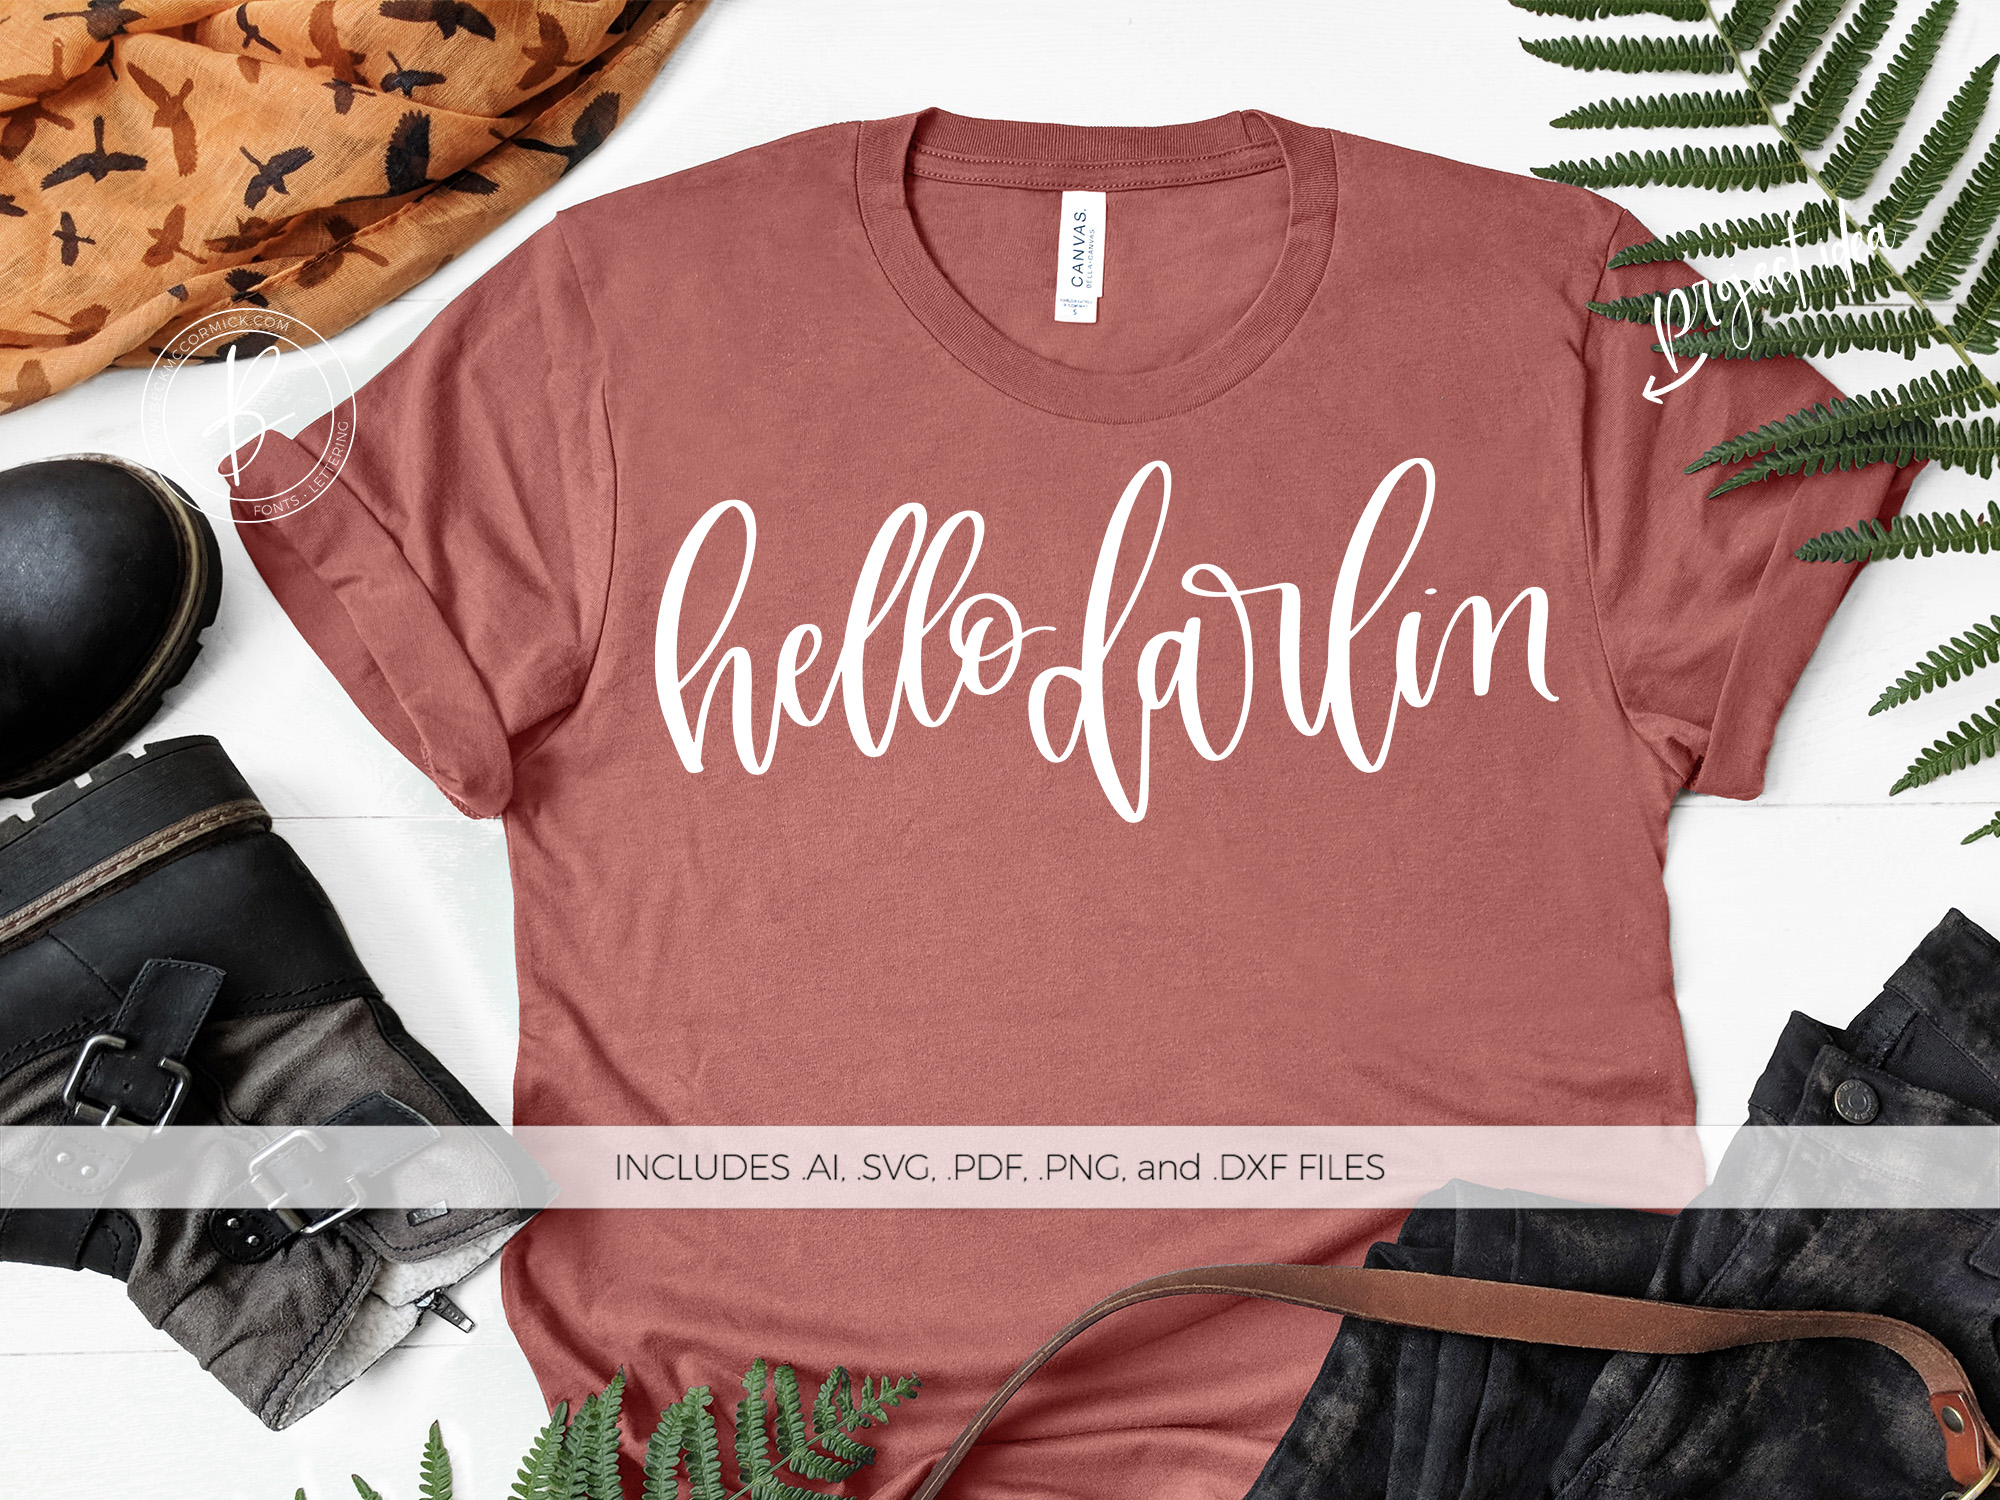 Download Free Hello Darlin Graphic By Beckmccormick Creative Fabrica for Cricut Explore, Silhouette and other cutting machines.